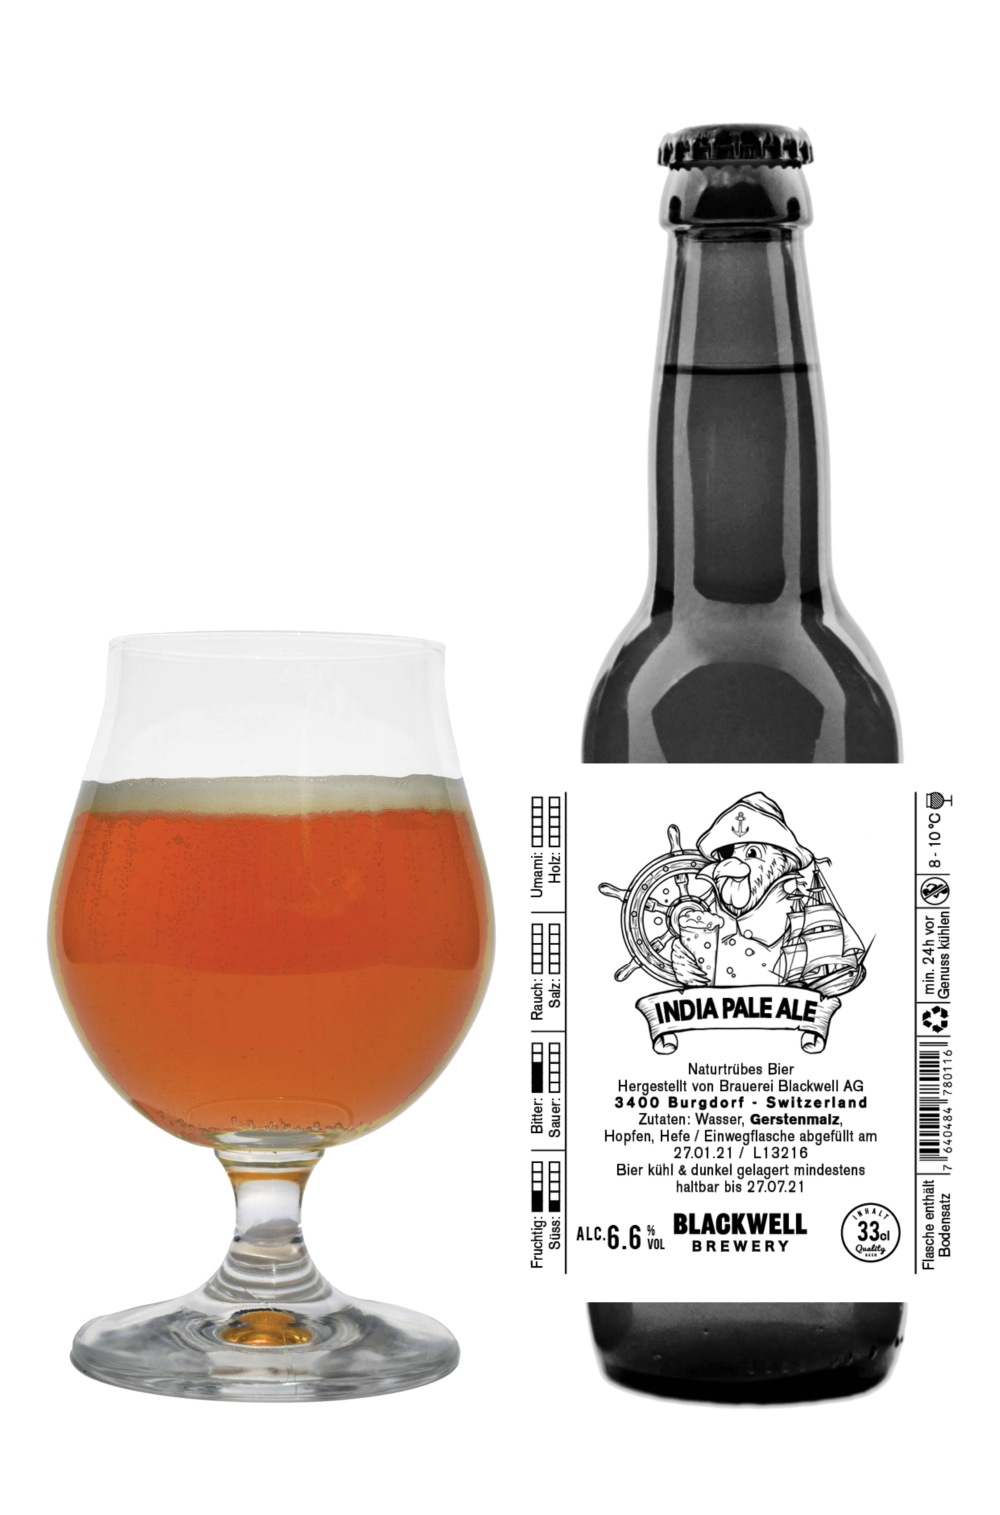 https://blackwellbrewery.ch/wp-content/uploads/2021/02/IPABlackwell-1-e1614258078566.png